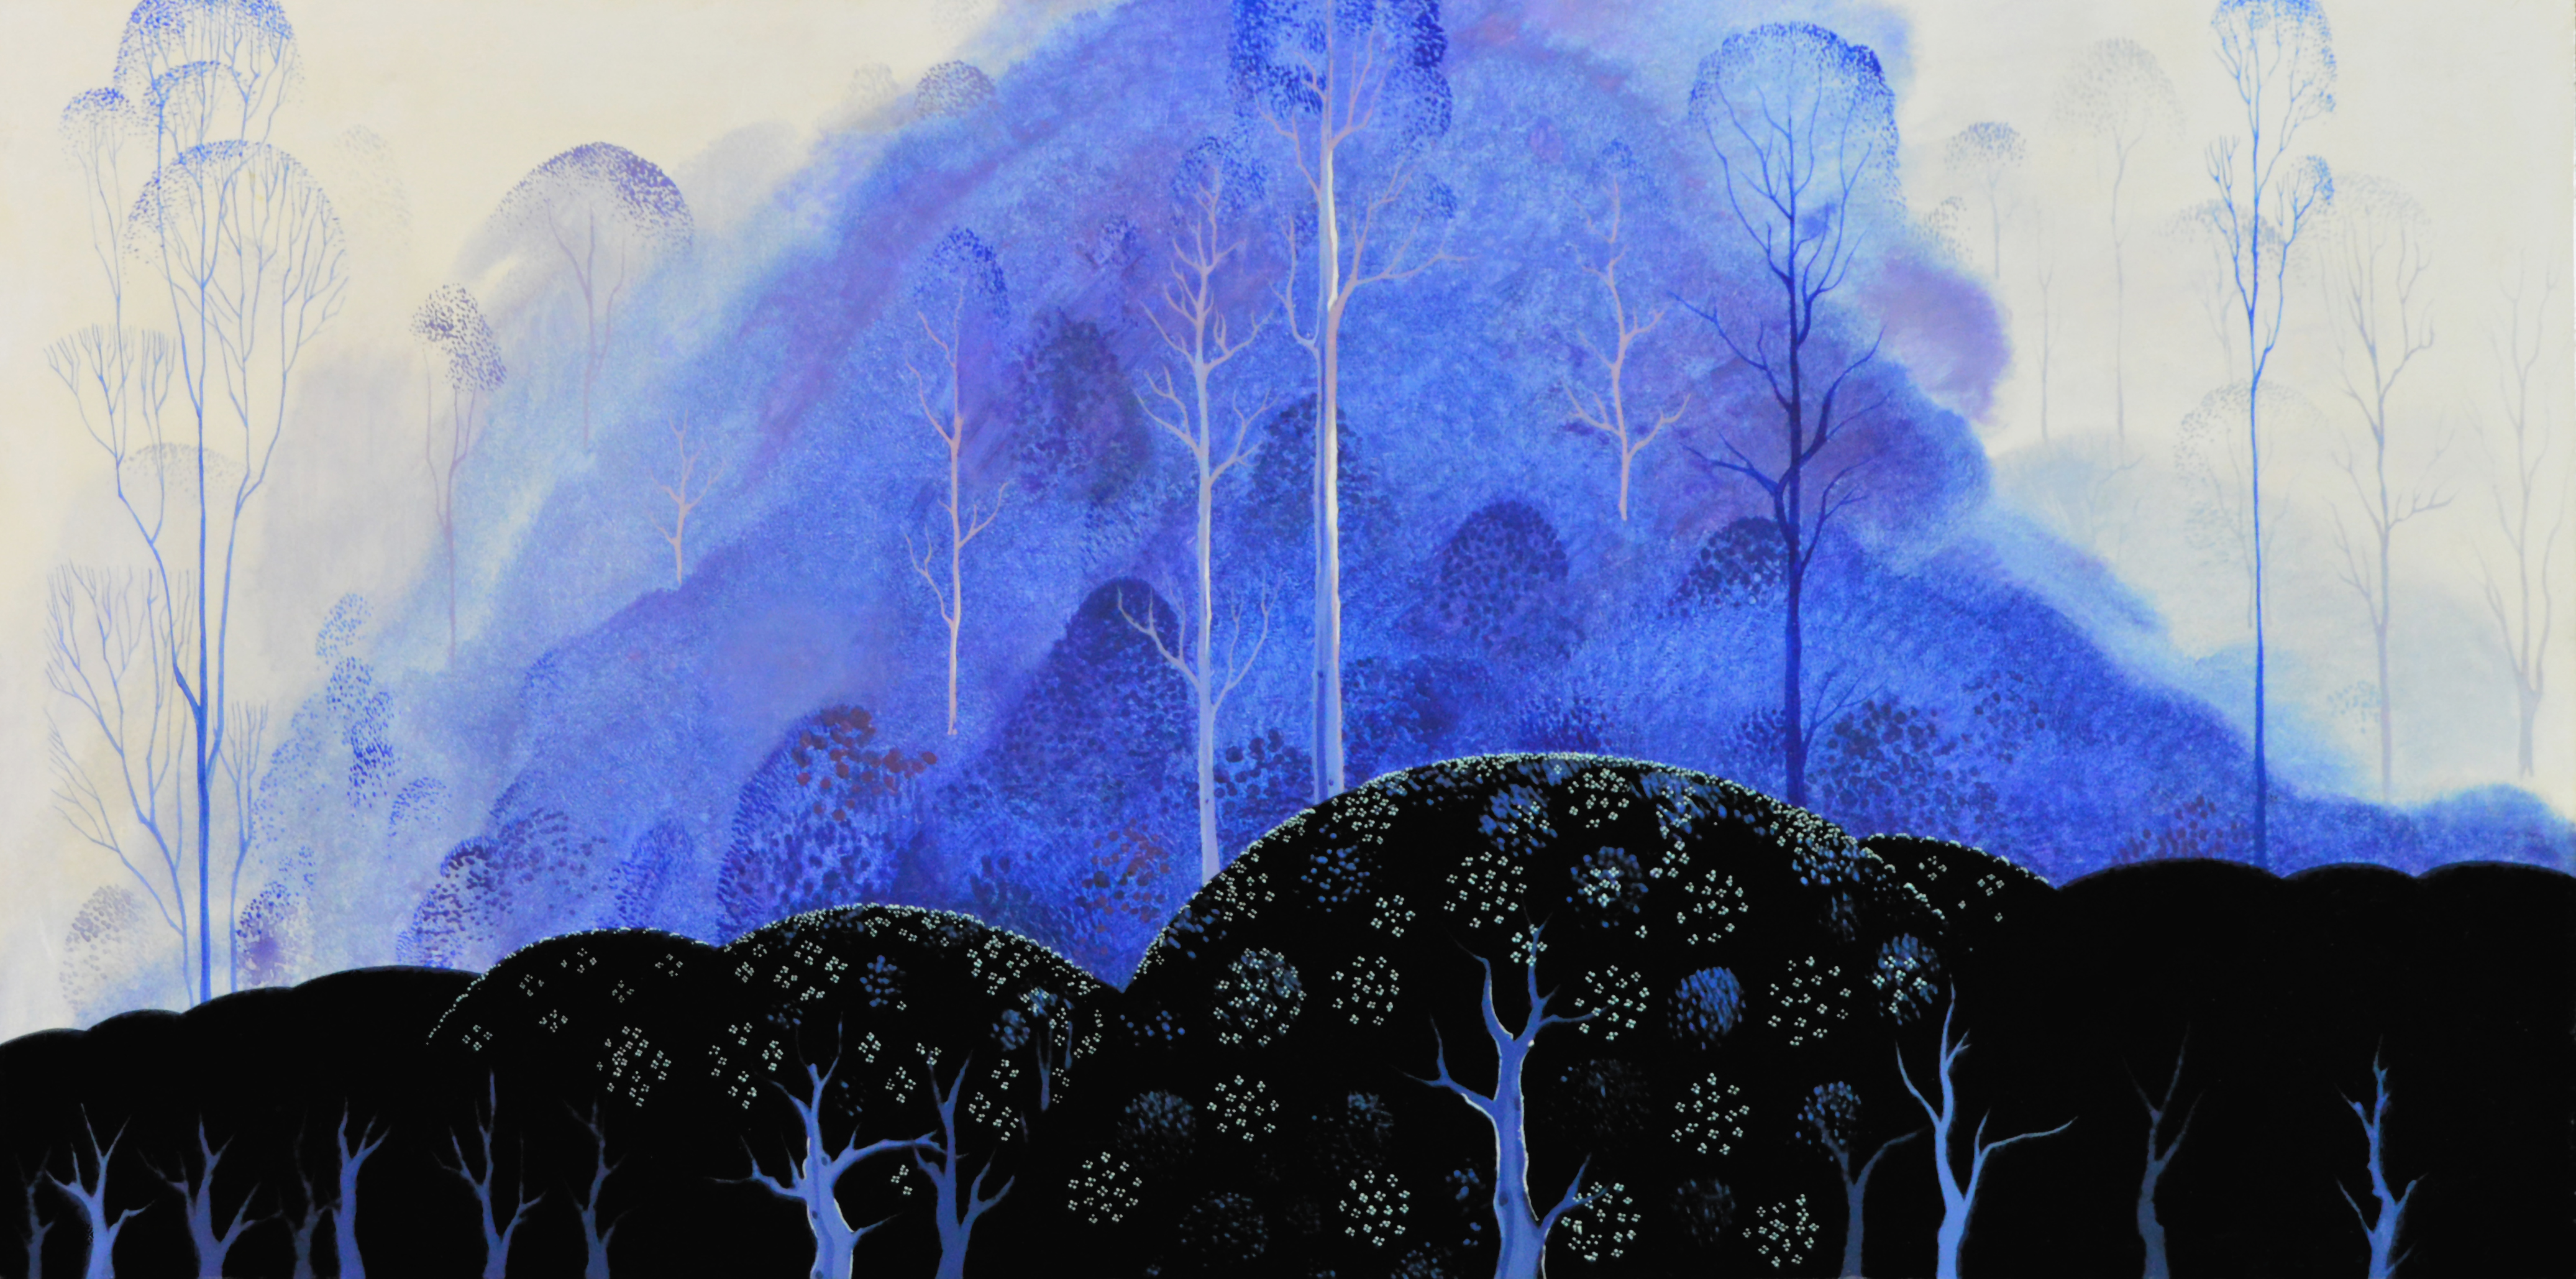 Eyvind Earle An Exhibit Of A Disney Legend On View At